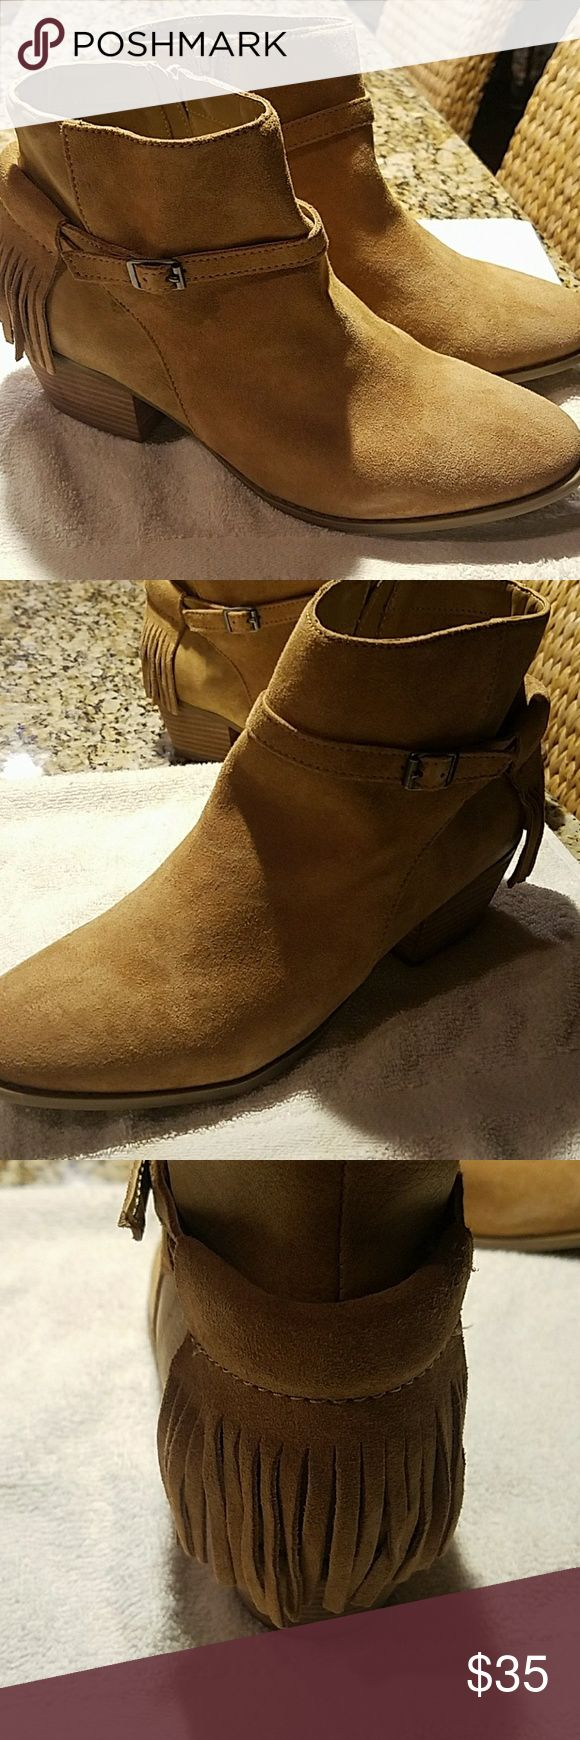 AMERICAN EAGLE BOOTIES AMERICAN EAGLE Outfitters booties new without tags size 10 American Eagle Outfitters Shoes Ankle Boots & Booties